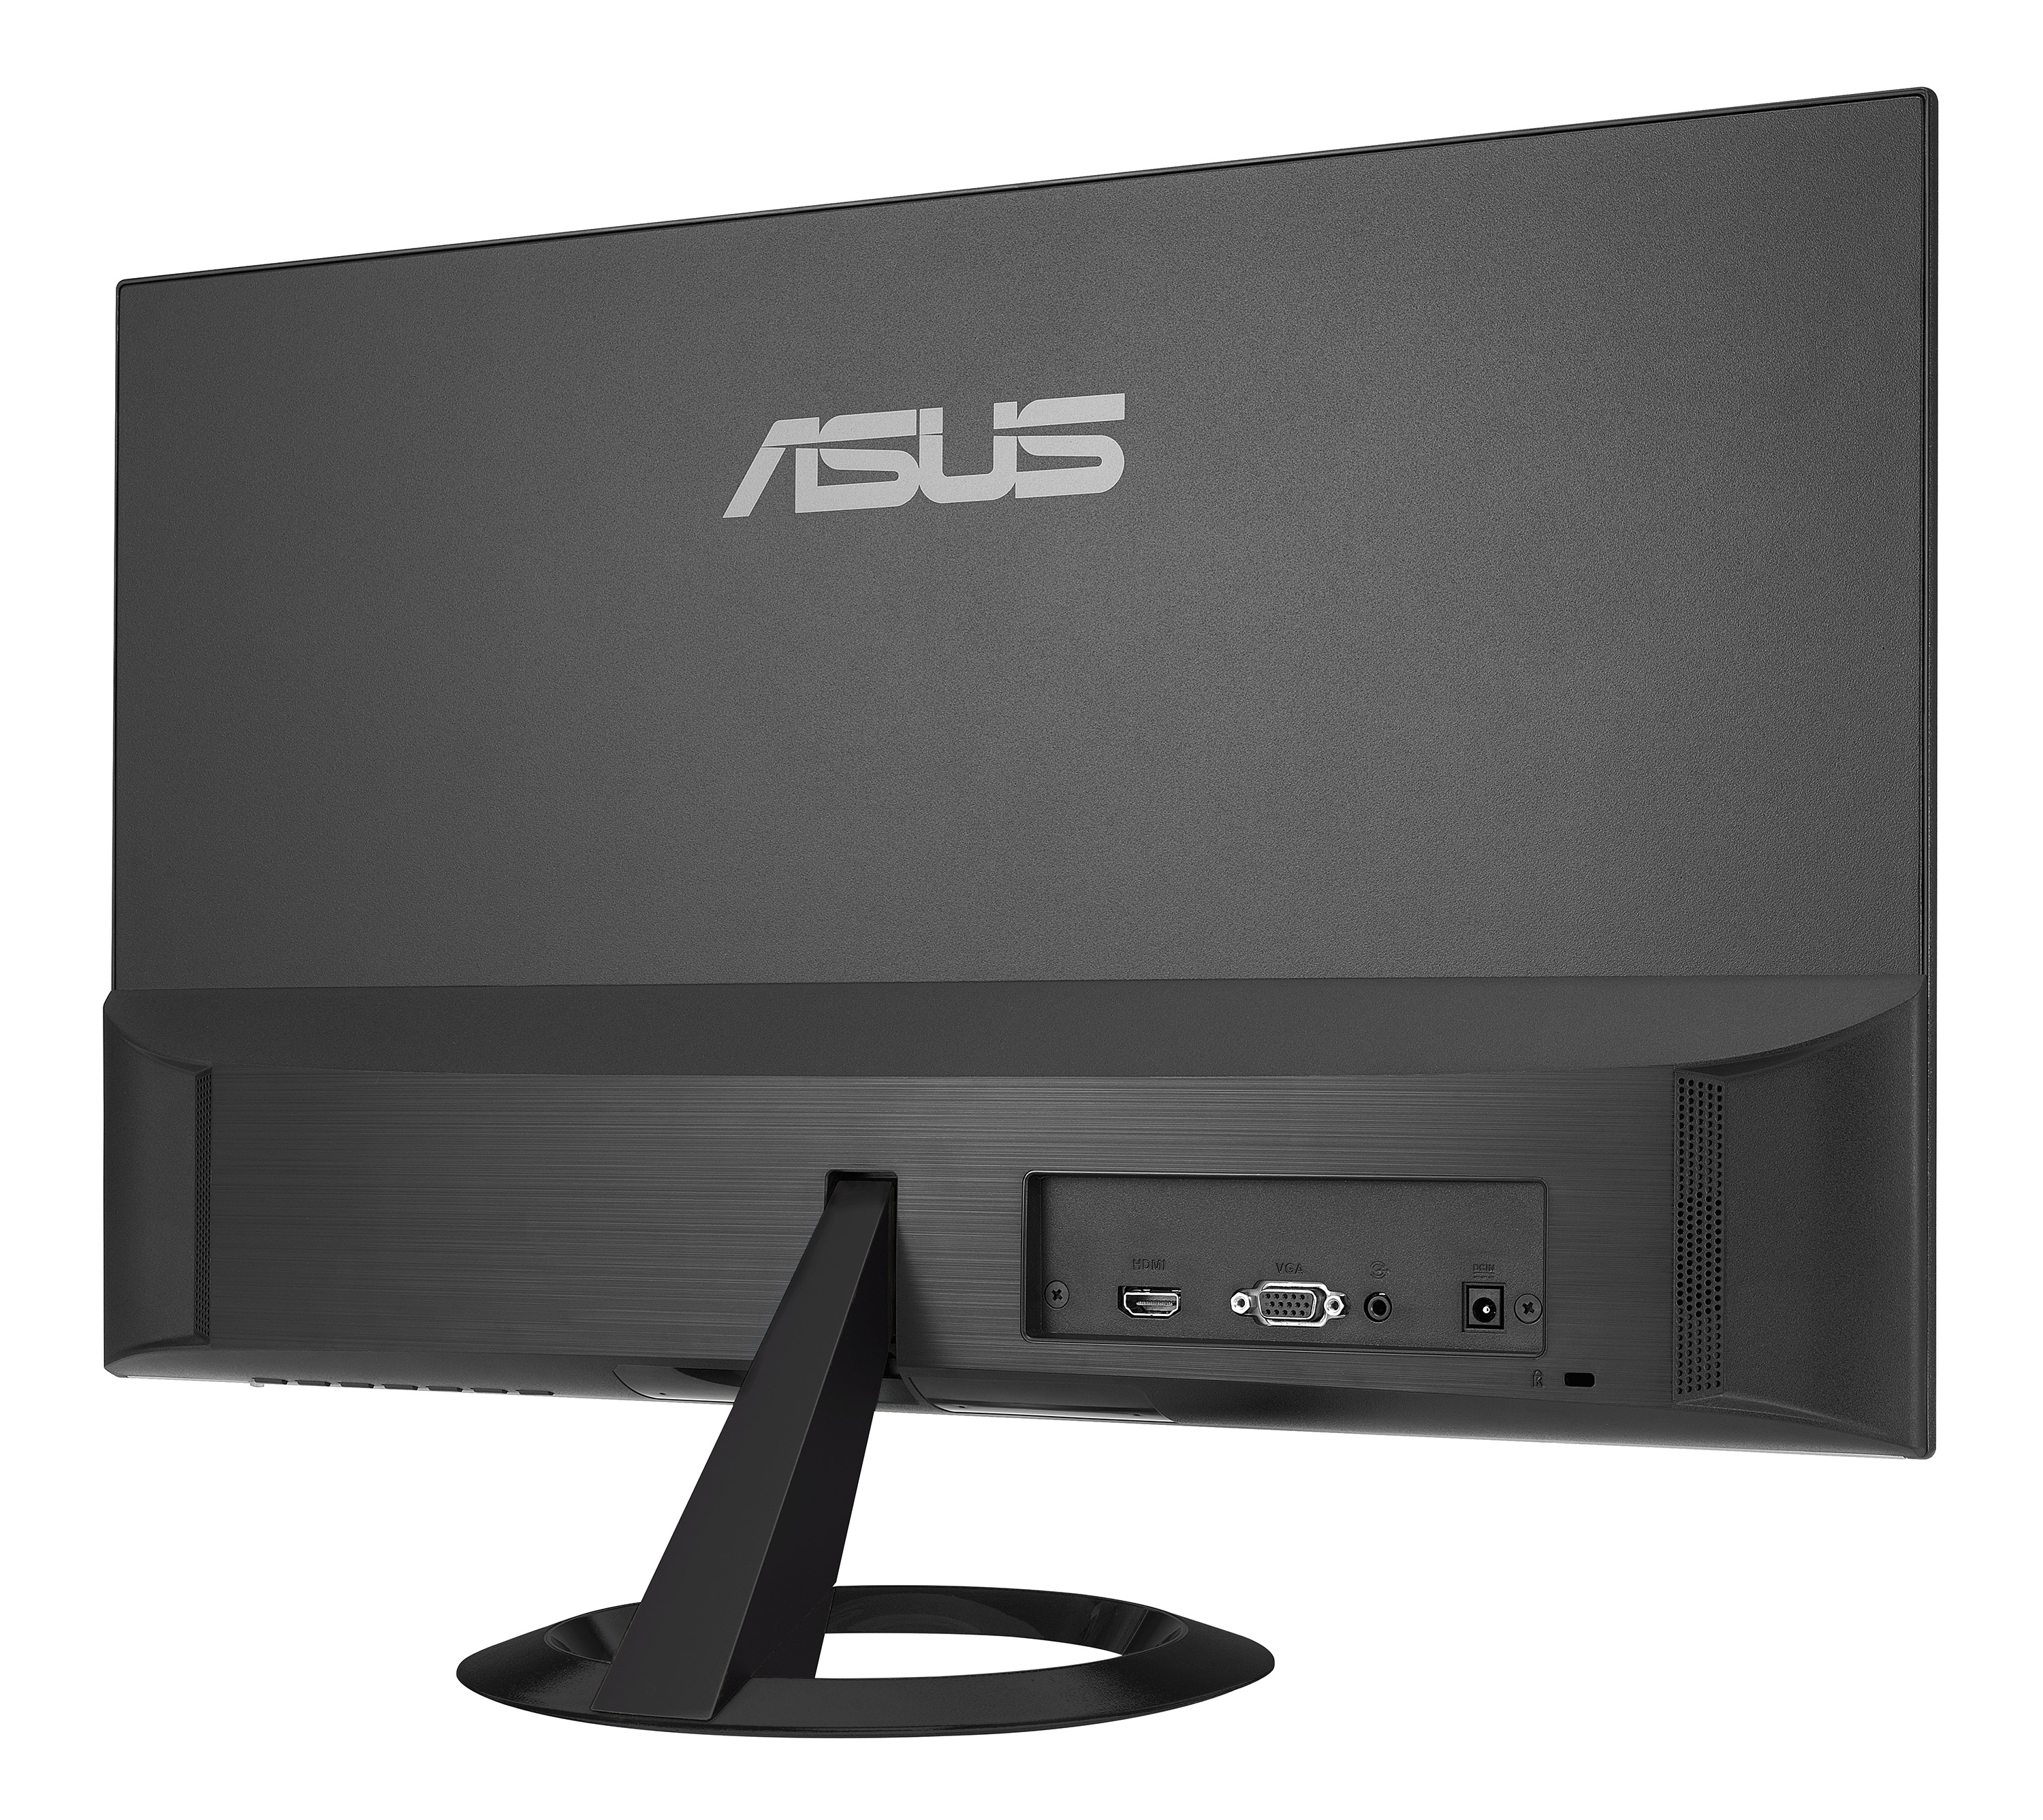 asus, asus vz239hr, monitors